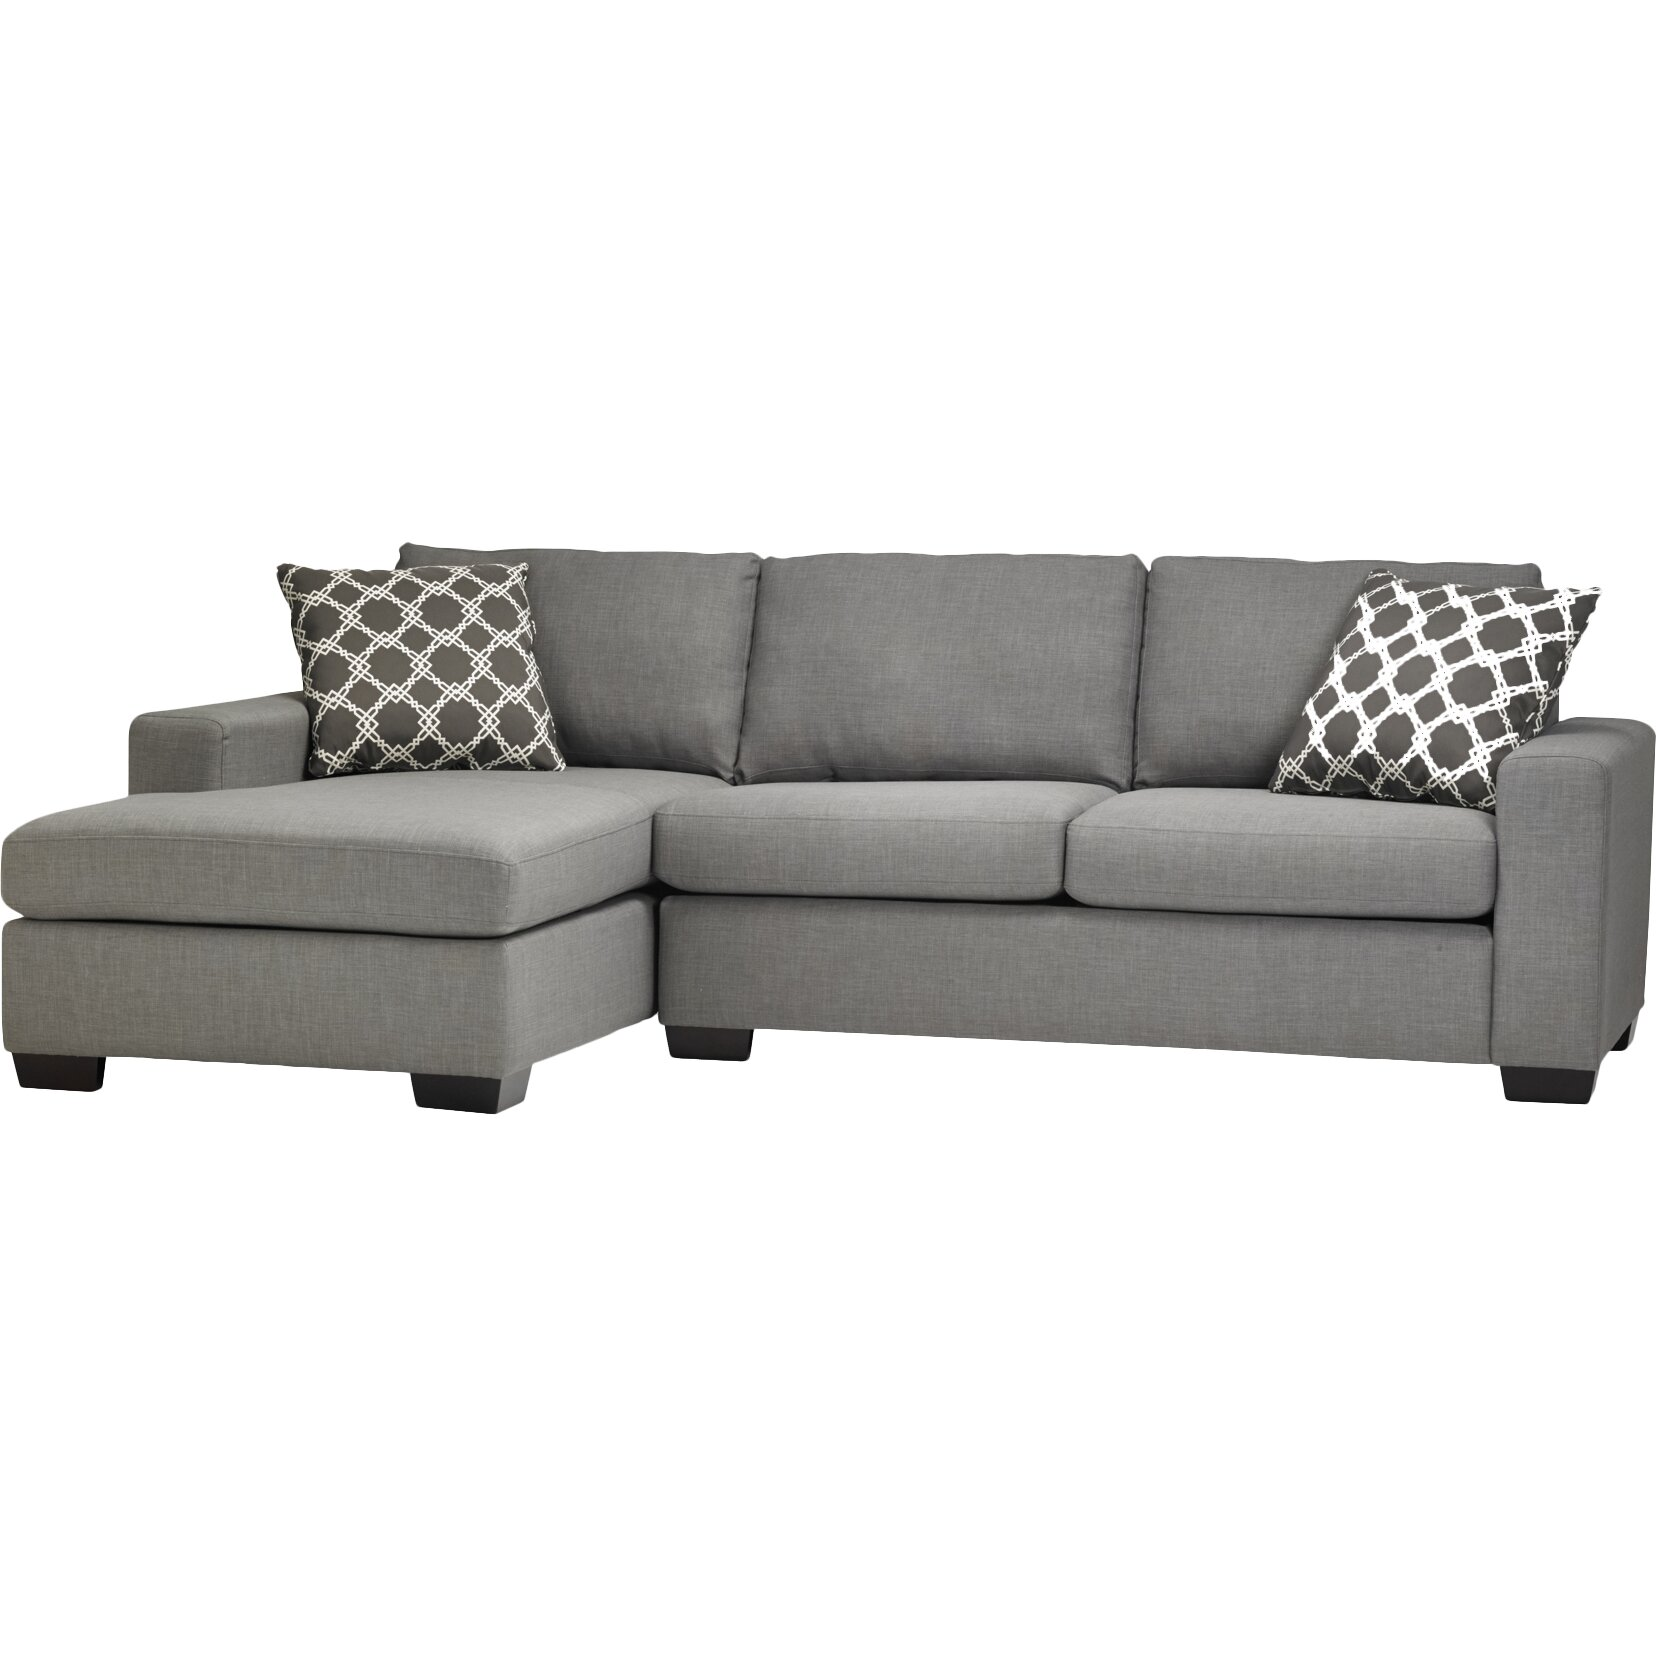 Sofa Bed Sectional Amazing Modern Tufted Brown Microfiber